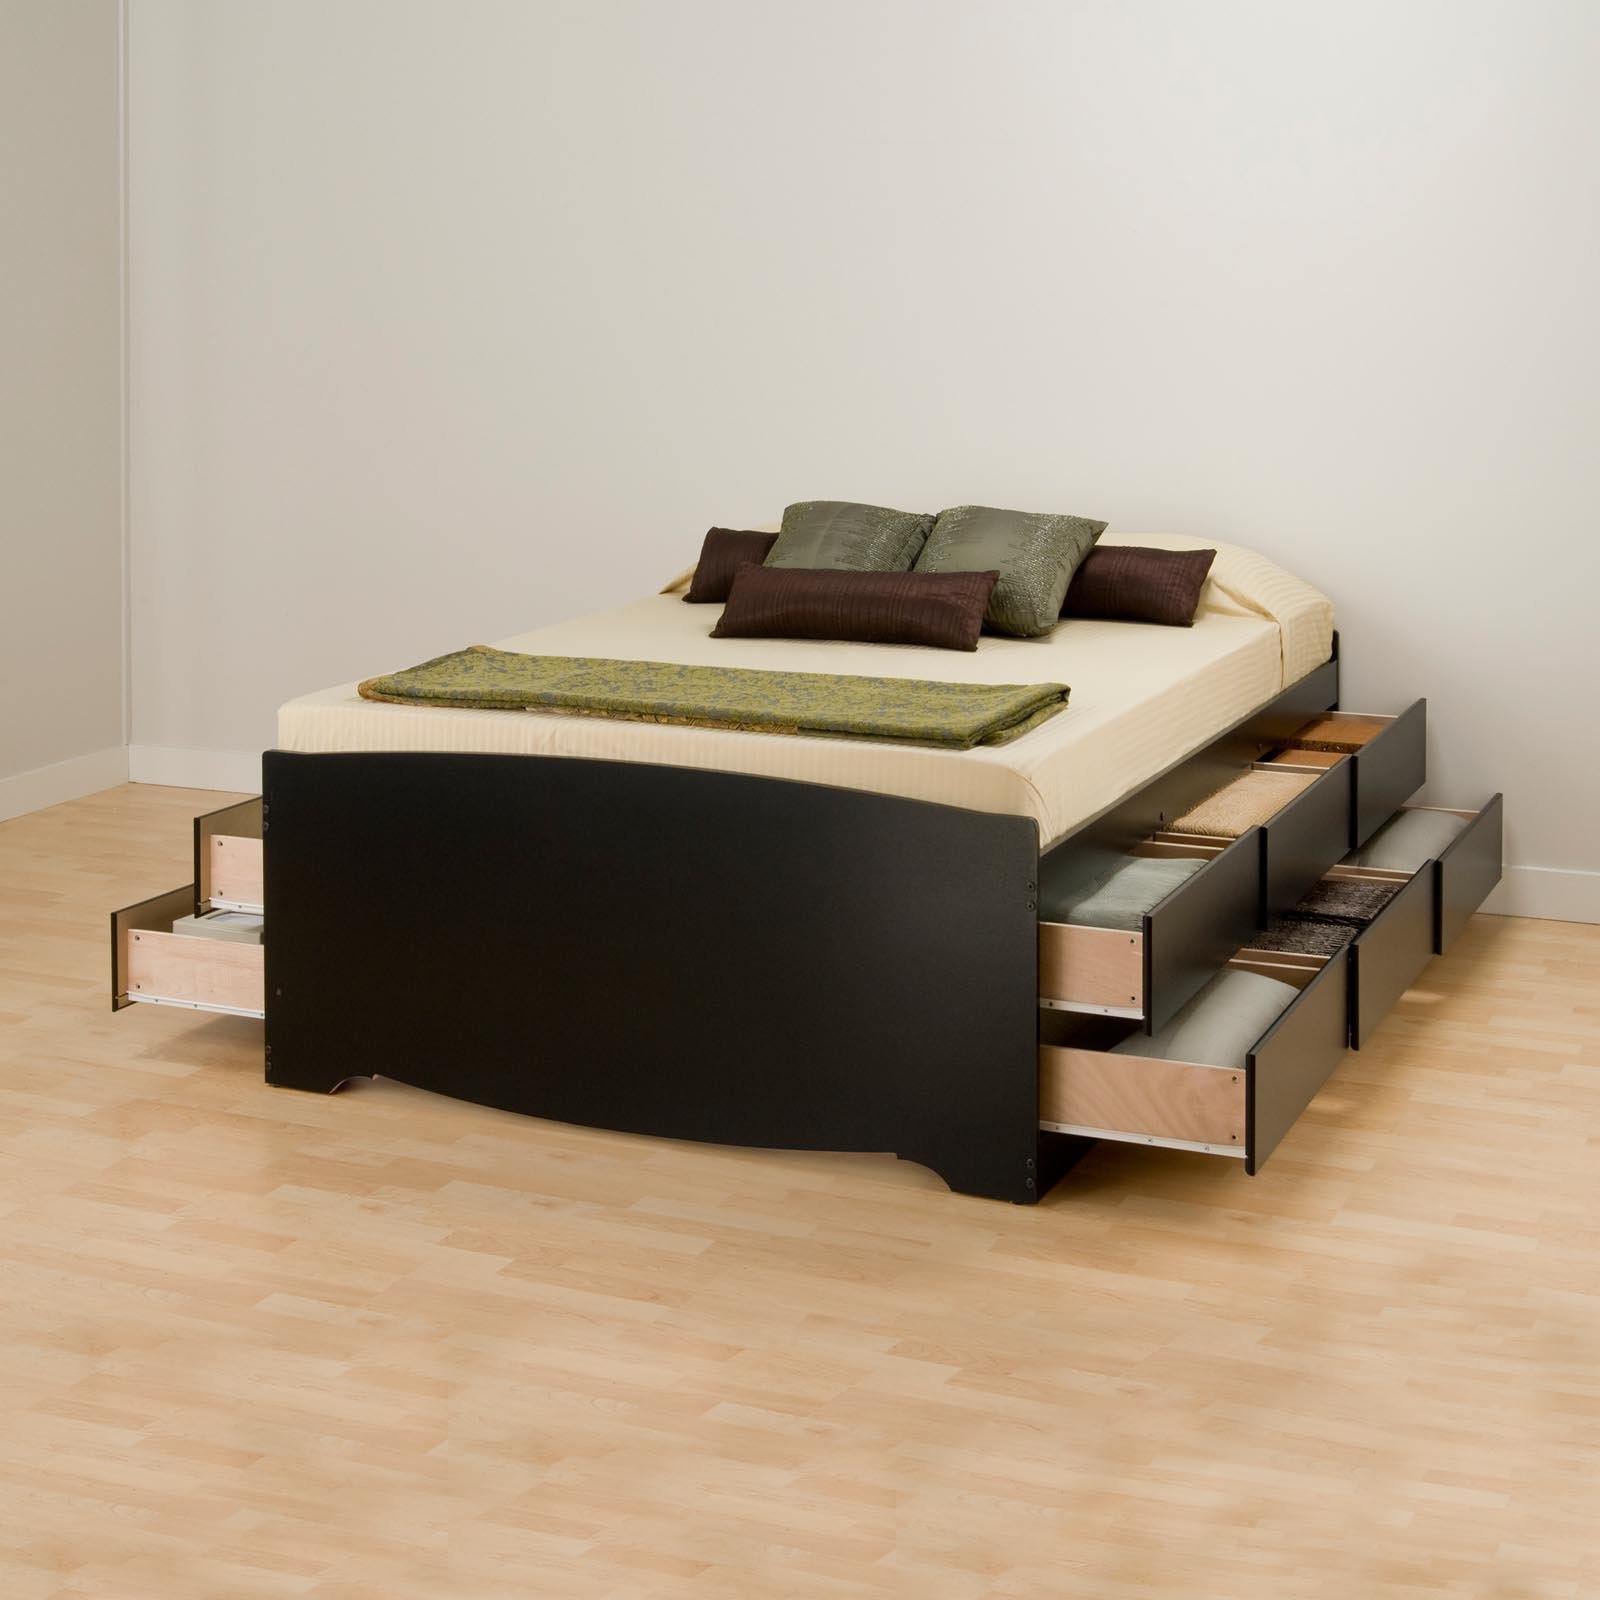 Amazing platform bed with storage vito storage platform bed-queen | hayneedle tbwishz